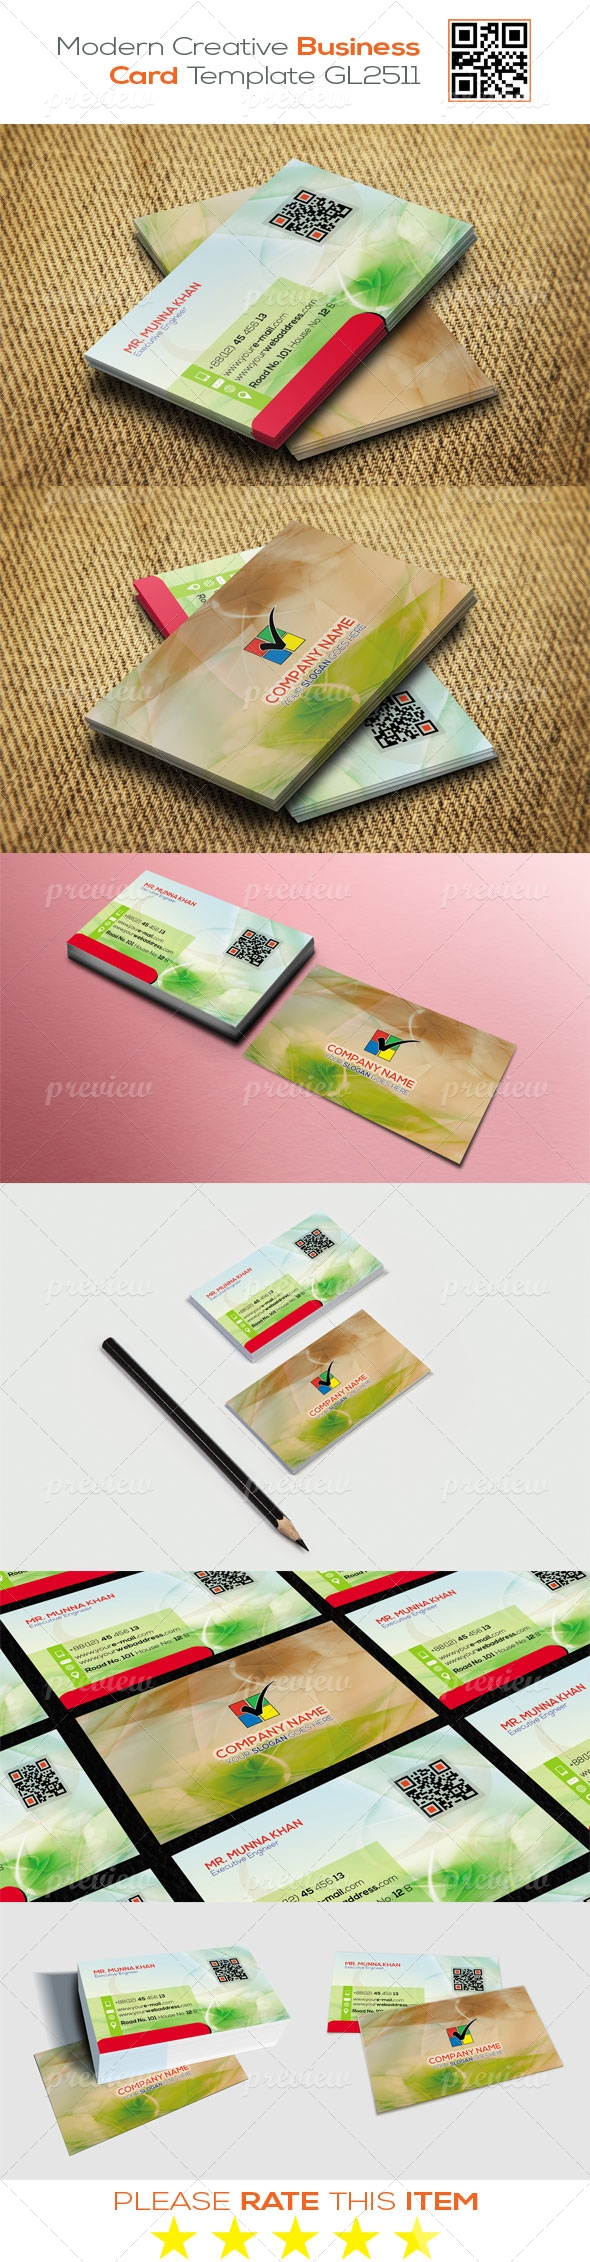 Modern Creative Business Card Template GL2511